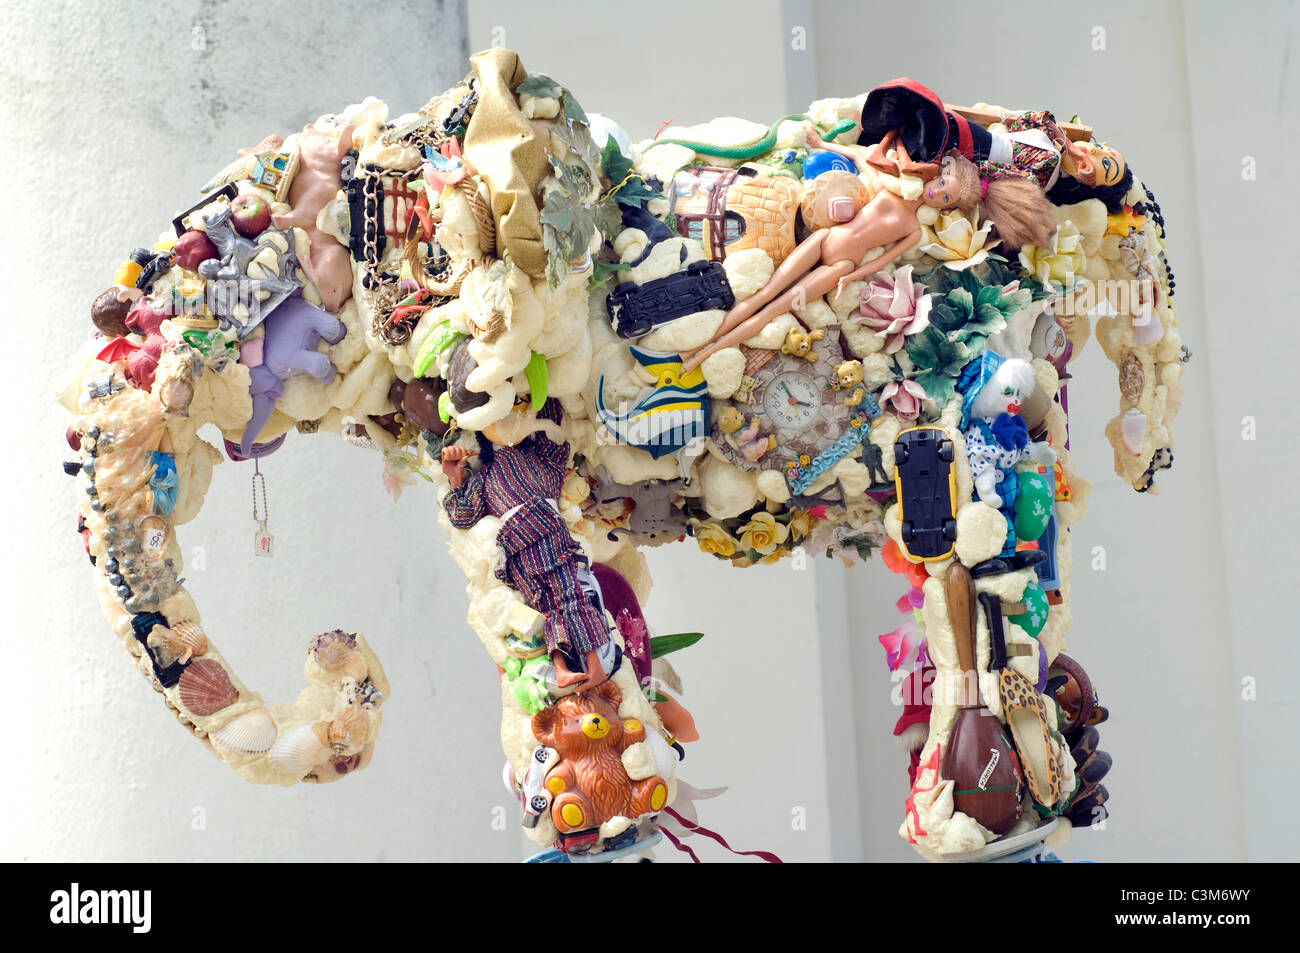 Sculptor Anthony Heywood's sculpture 'Earth Elephant' made from recycled objects. - Stock Image